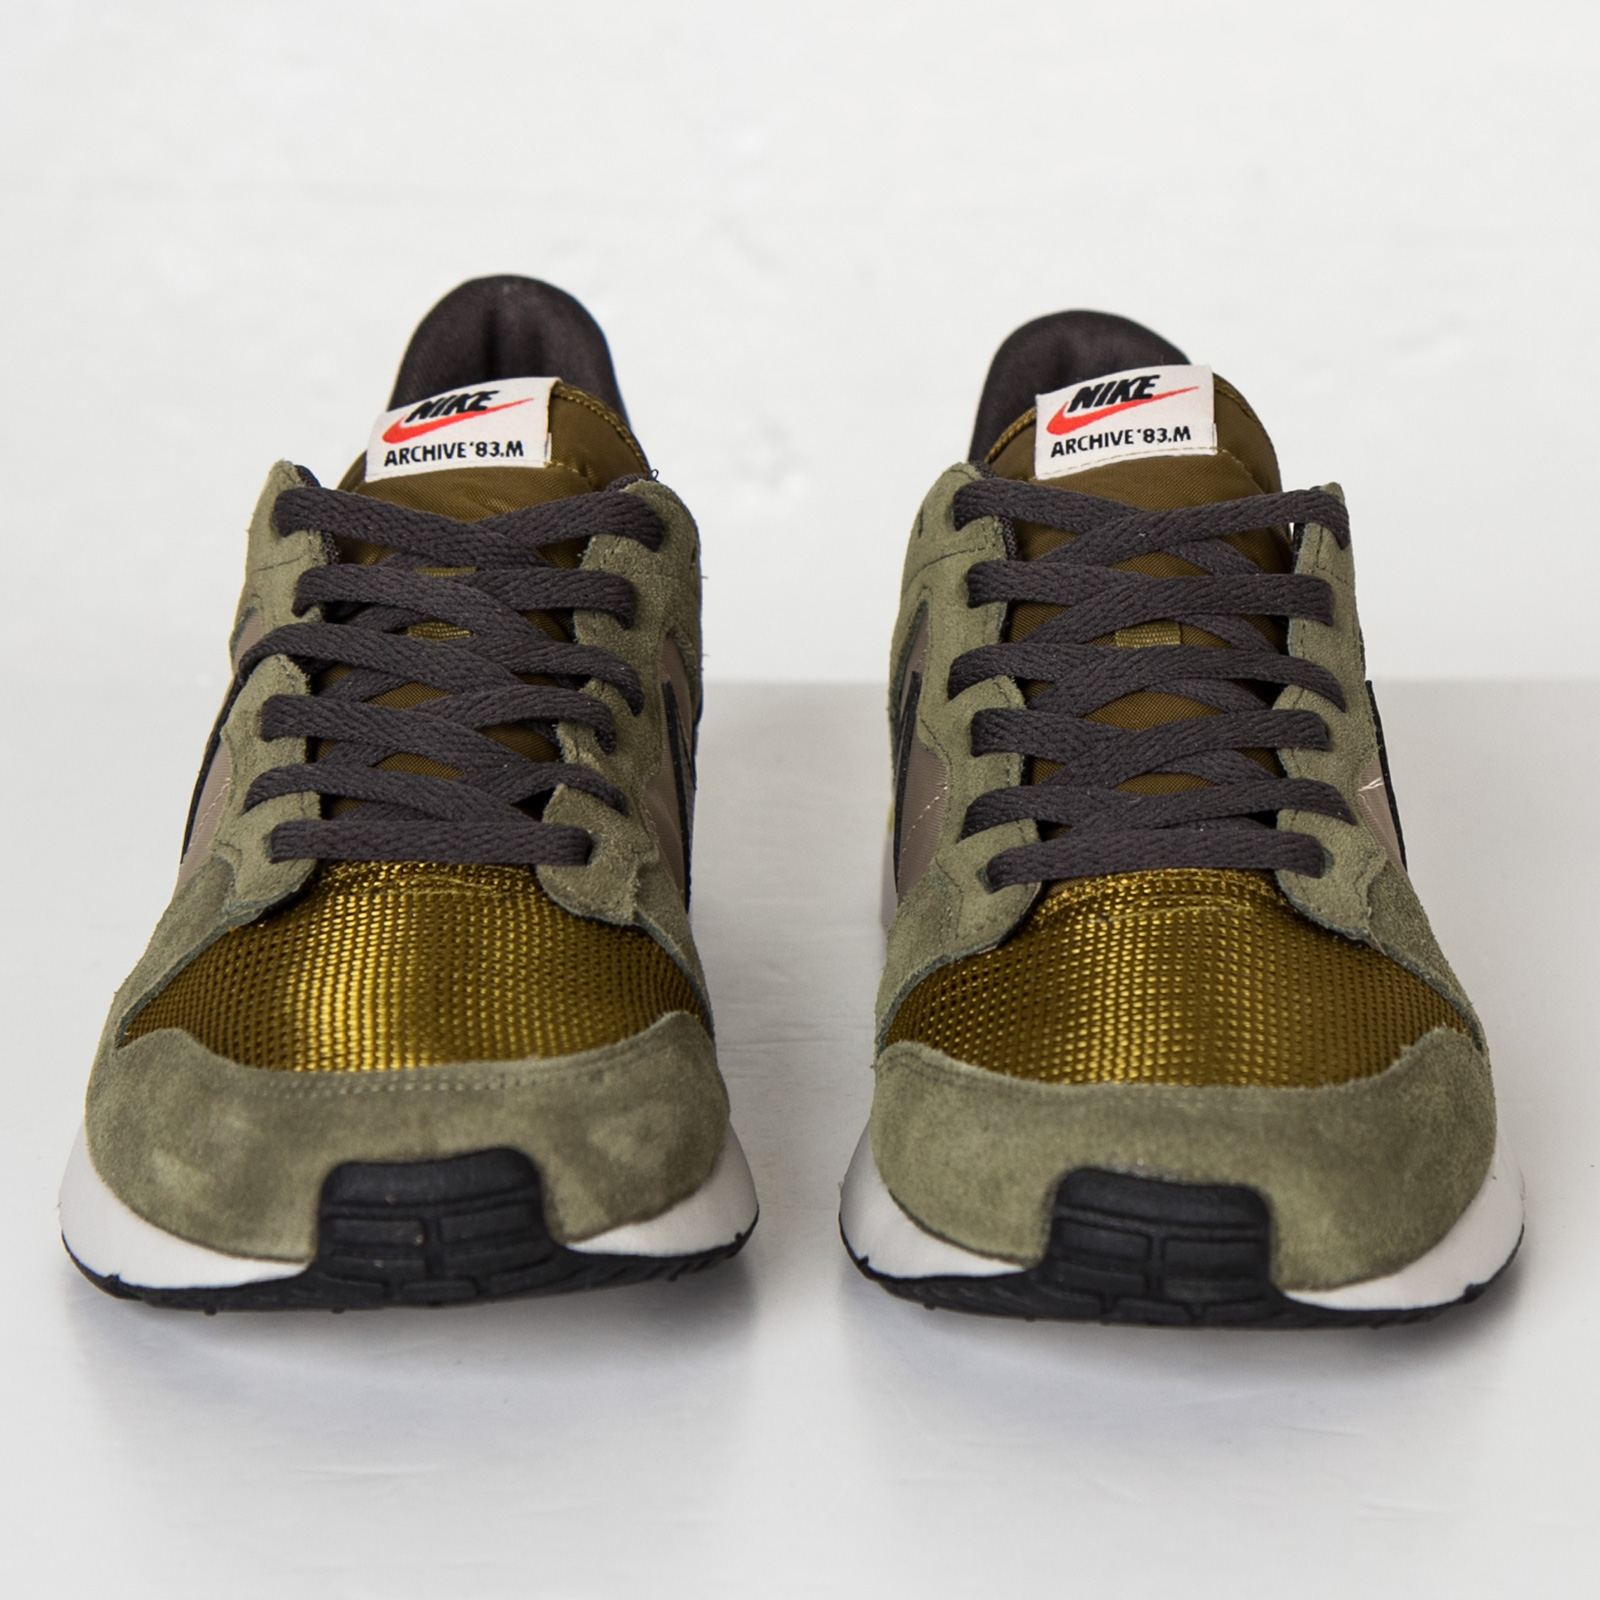 official photos 07fc9 622c2 hot nike archive 83 medium olive f4443 03aff  reduced nike archive Â83 m  1bf2f 6f17e